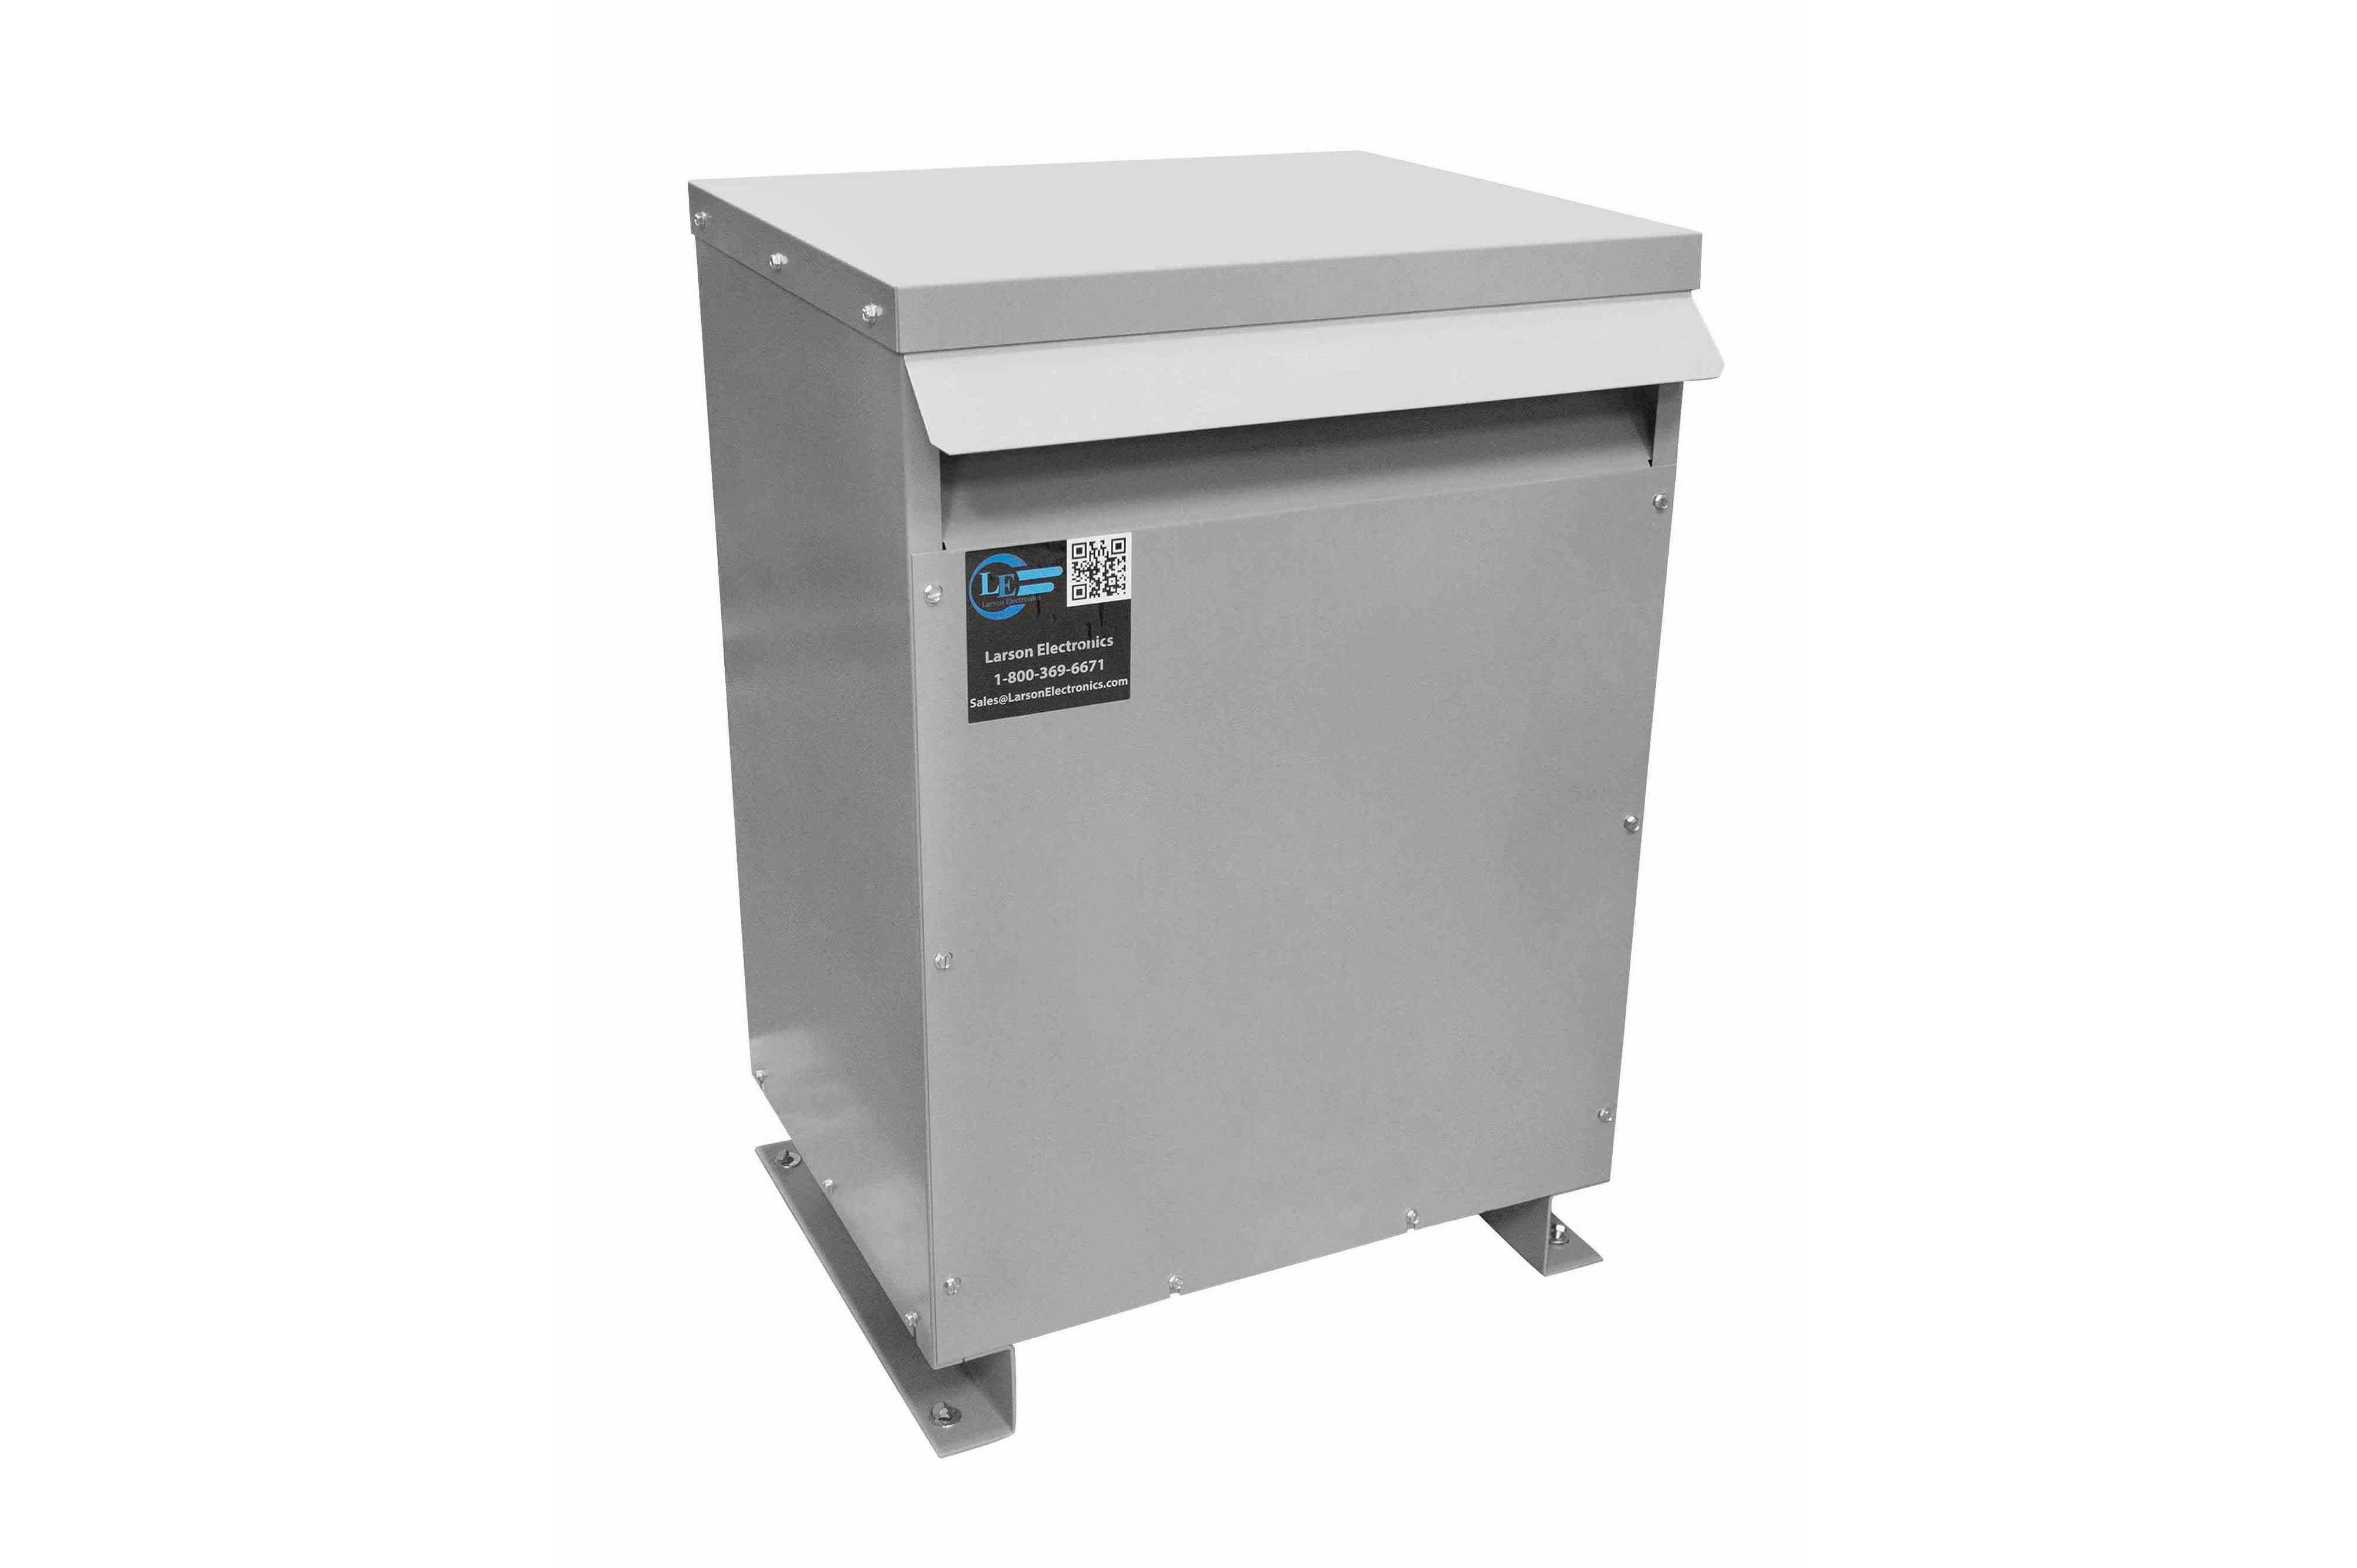 52.5 kVA 3PH Isolation Transformer, 208V Wye Primary, 600V Delta Secondary, N3R, Ventilated, 60 Hz